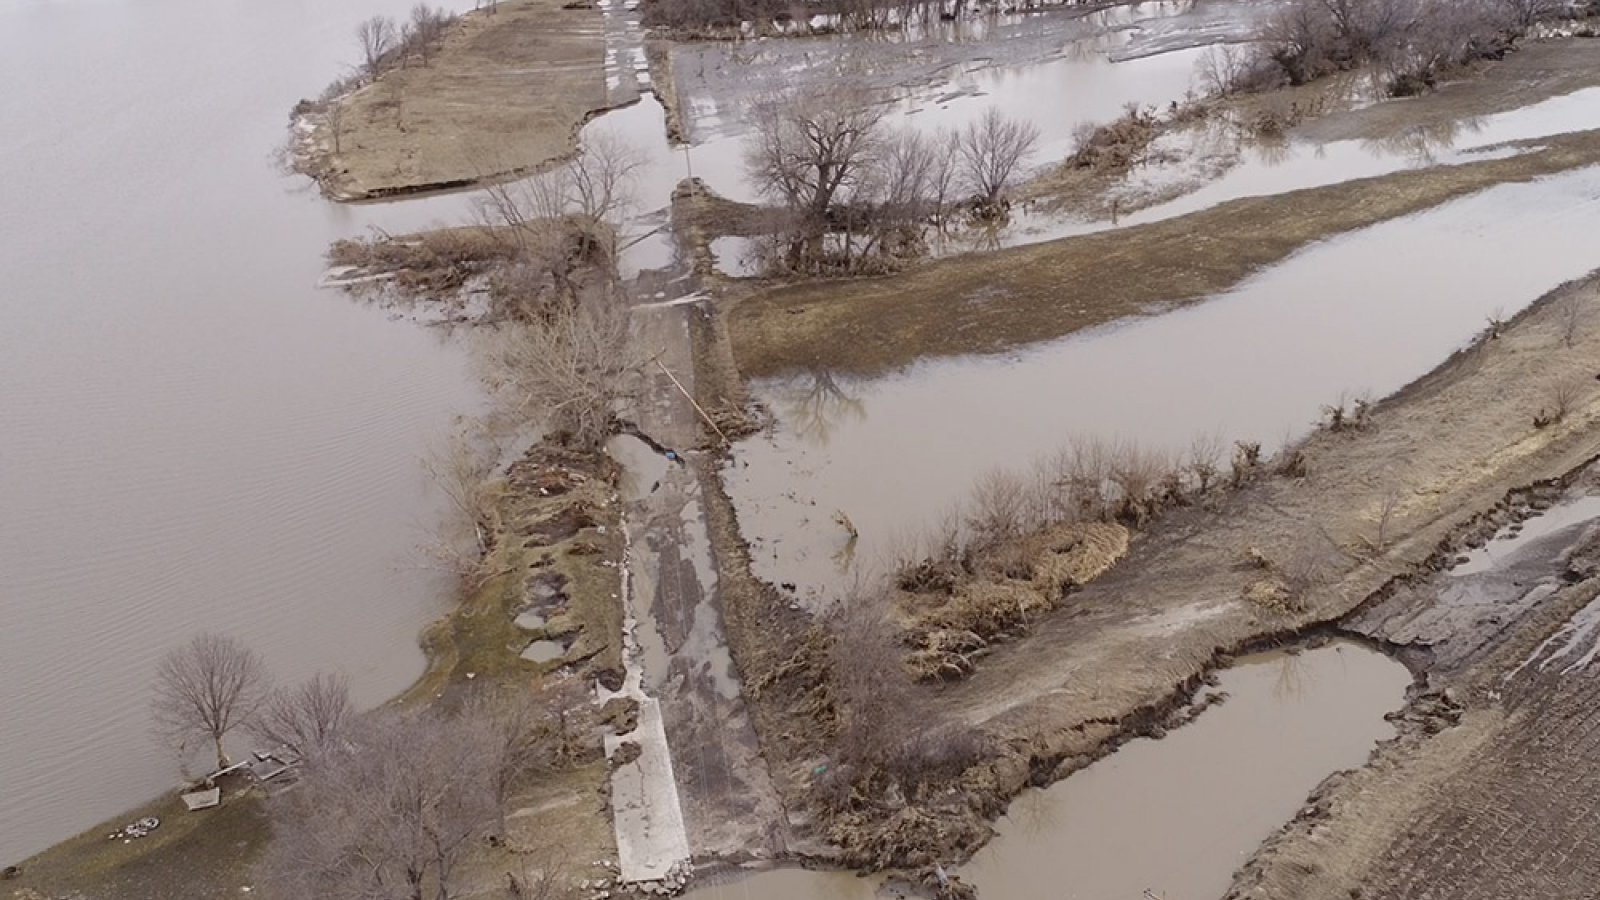 In March 2019, flooding along the Loup River between Genoa and Monroe wiped out roads and left some homes surrounded by water.